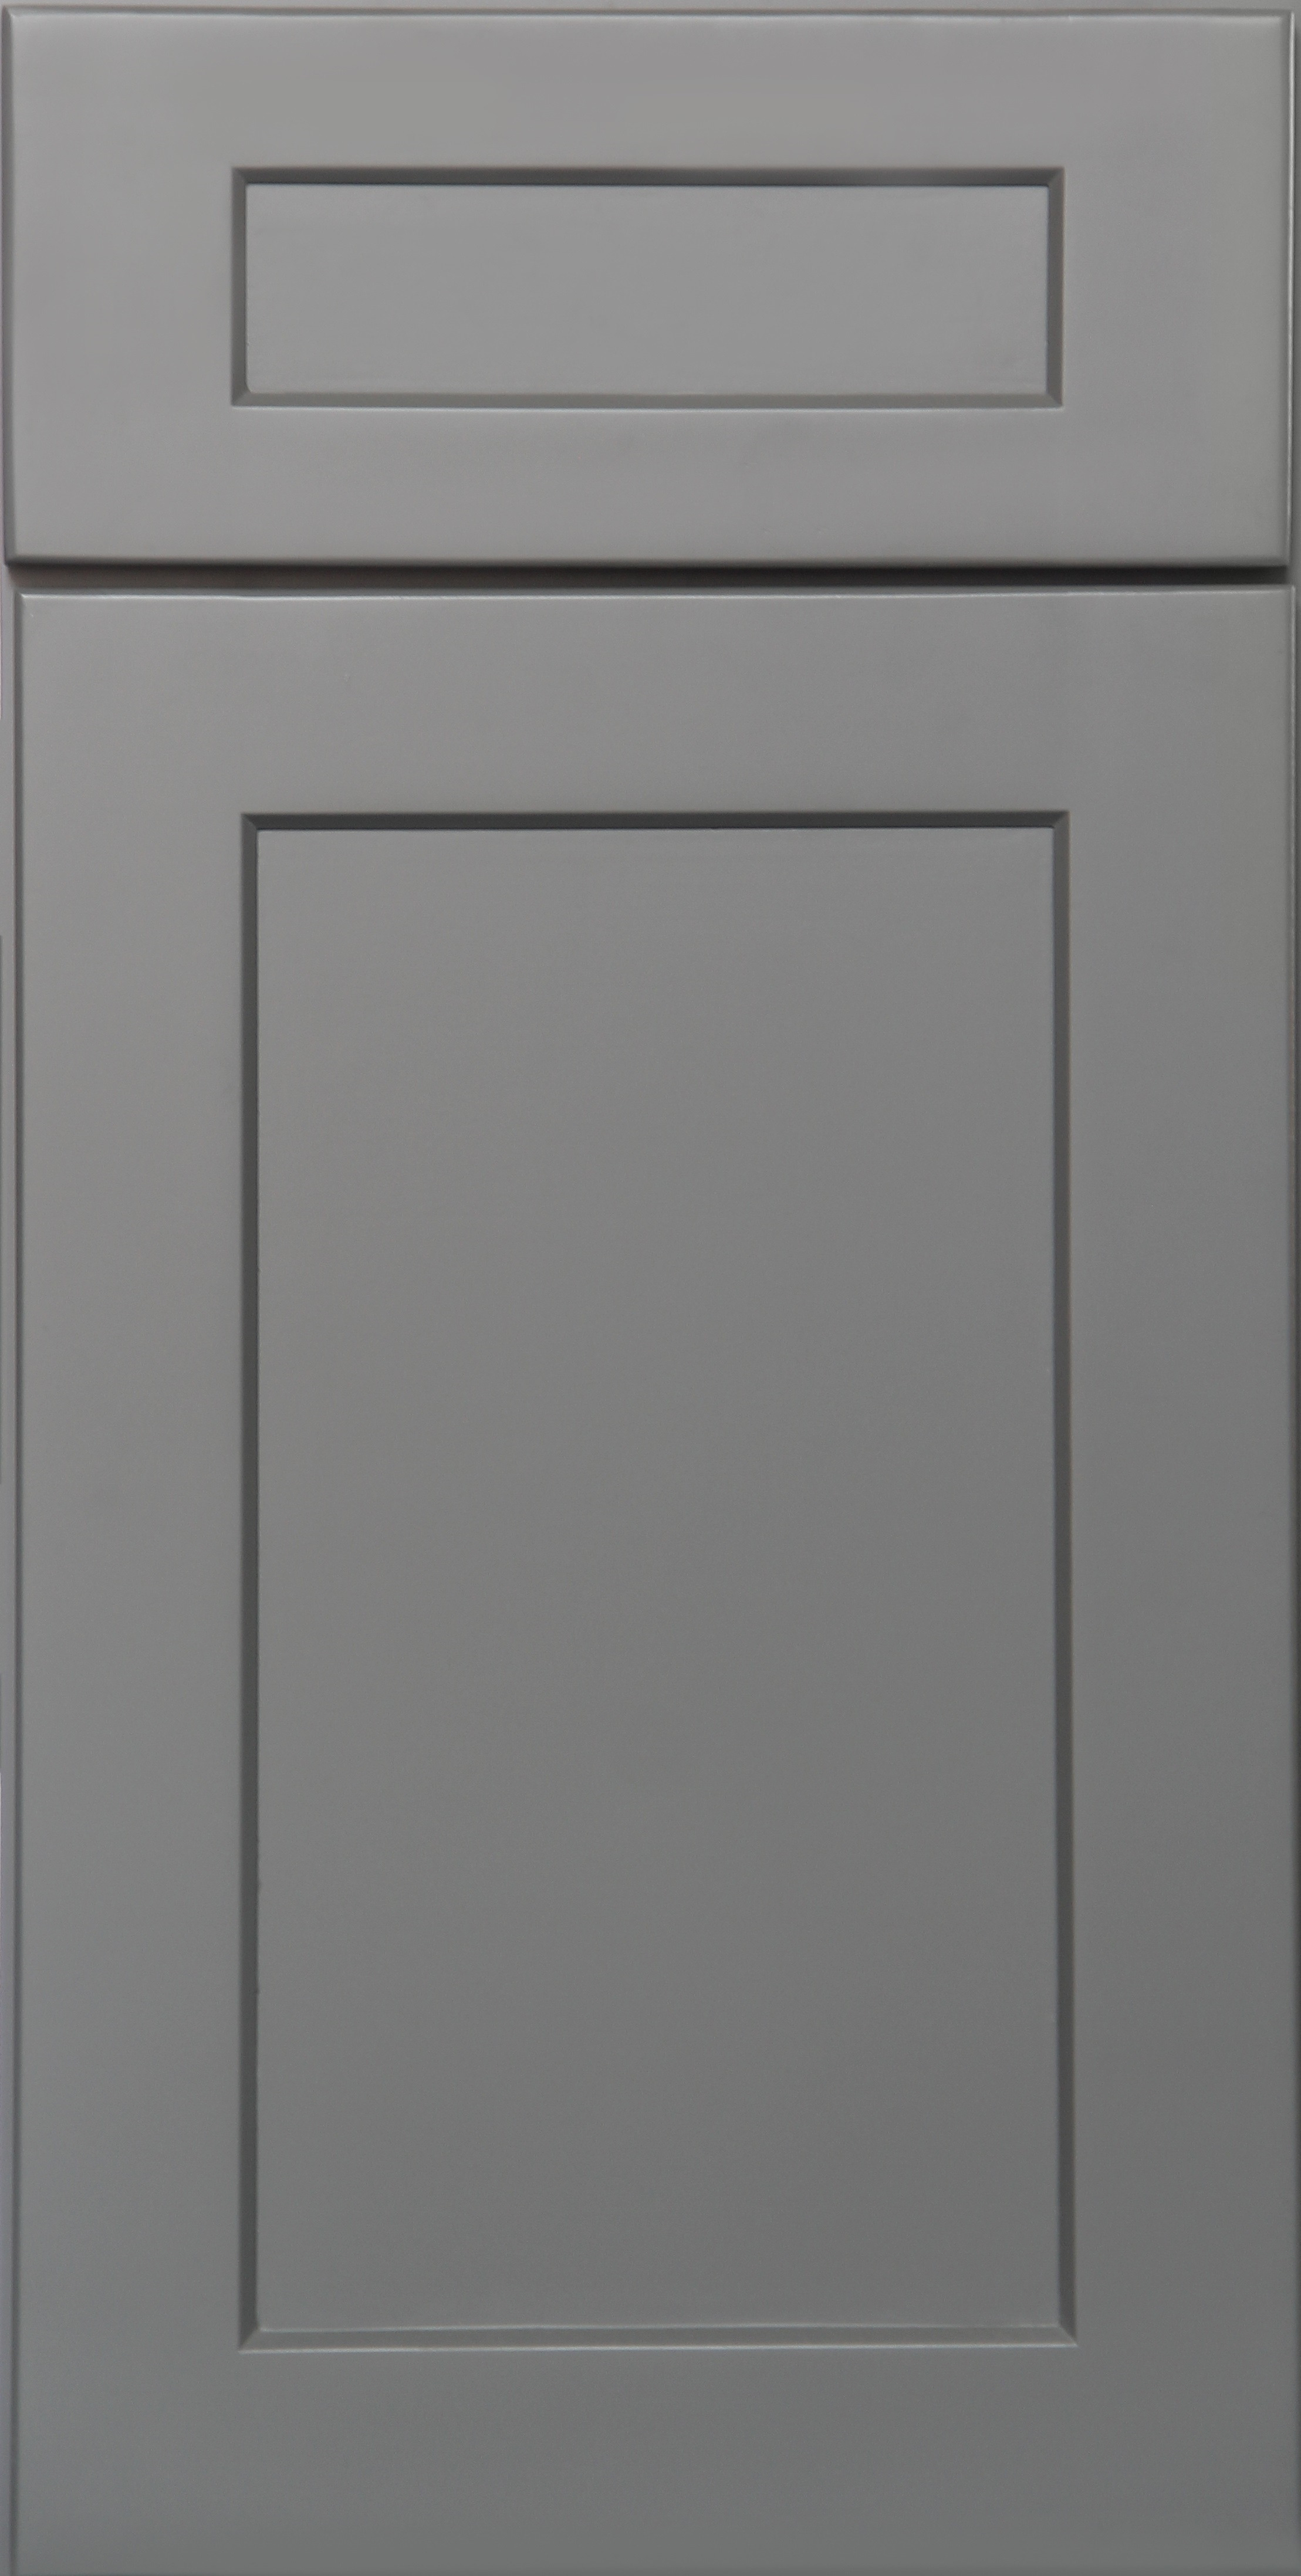 new shaker door styles and finishes in stock ready to assemble wide mouth shaker lid wide shaker cabinet door dimension